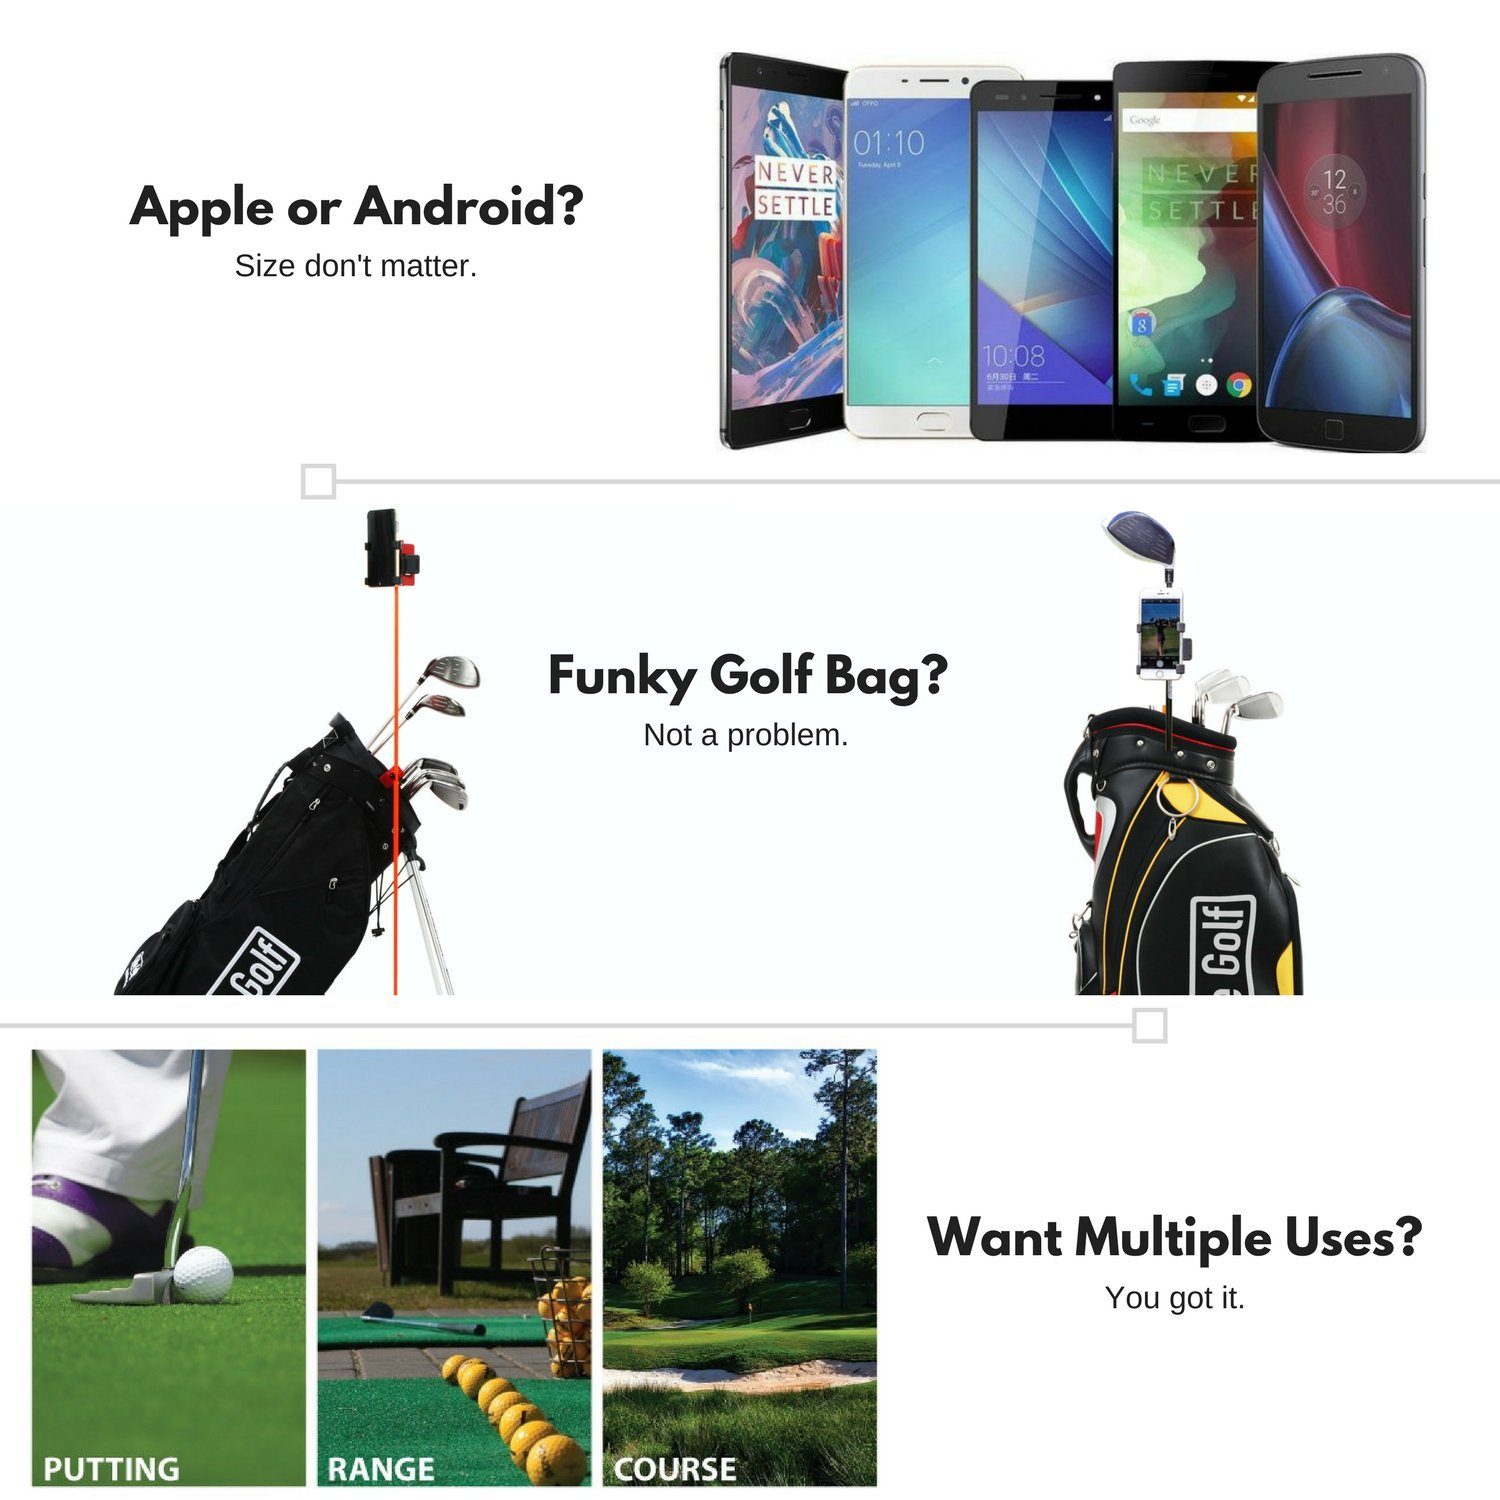 SelfieGolf Record Golf Swing - Cell Phone Clip Holder and Training Aid by TM - Golf Accessories | The Winner of The PGA Best of 2017 | Compatible with Any Smart Phone (Red/White) by Selfie Golf (Image #5)